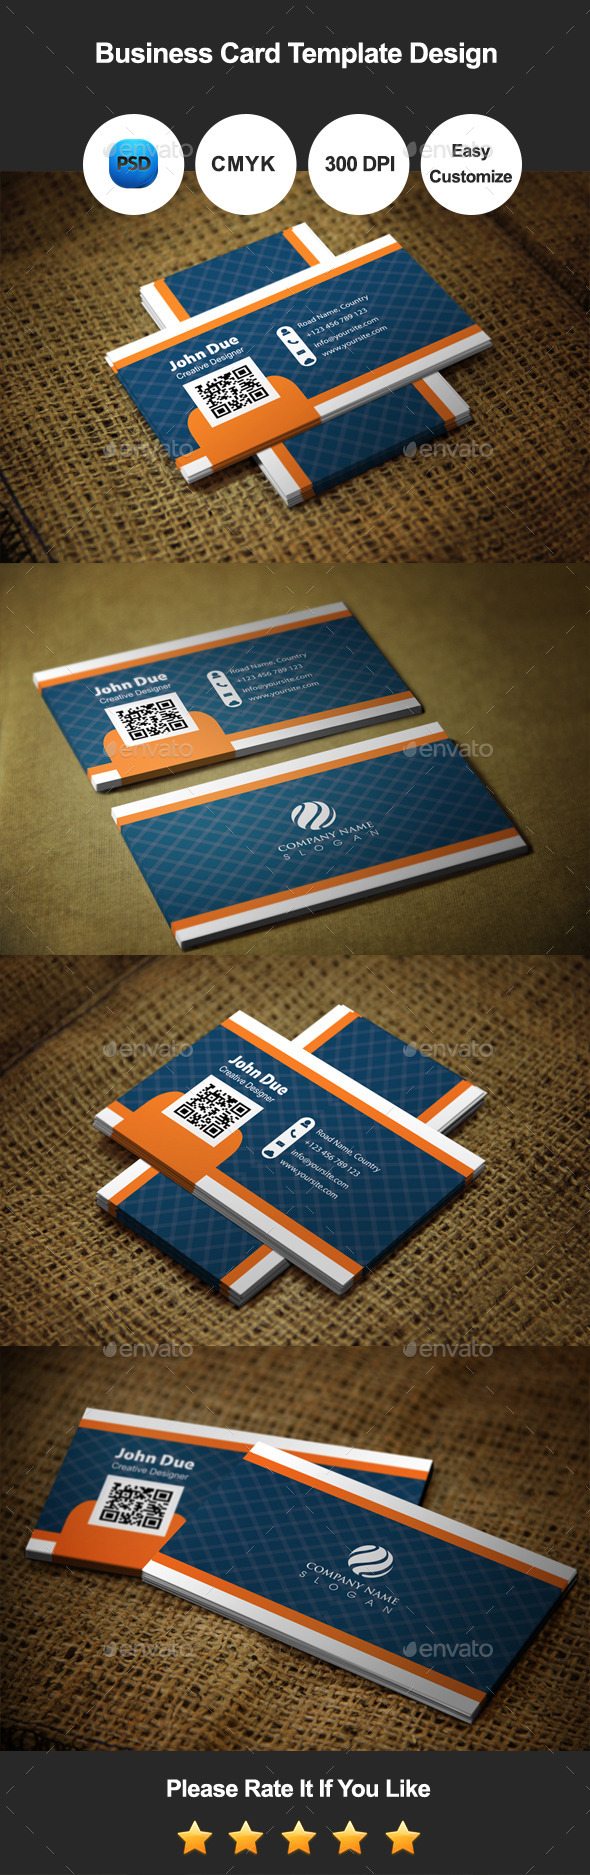 Crossoly Creative Business Card Template Design - Industry Specific Business Cards